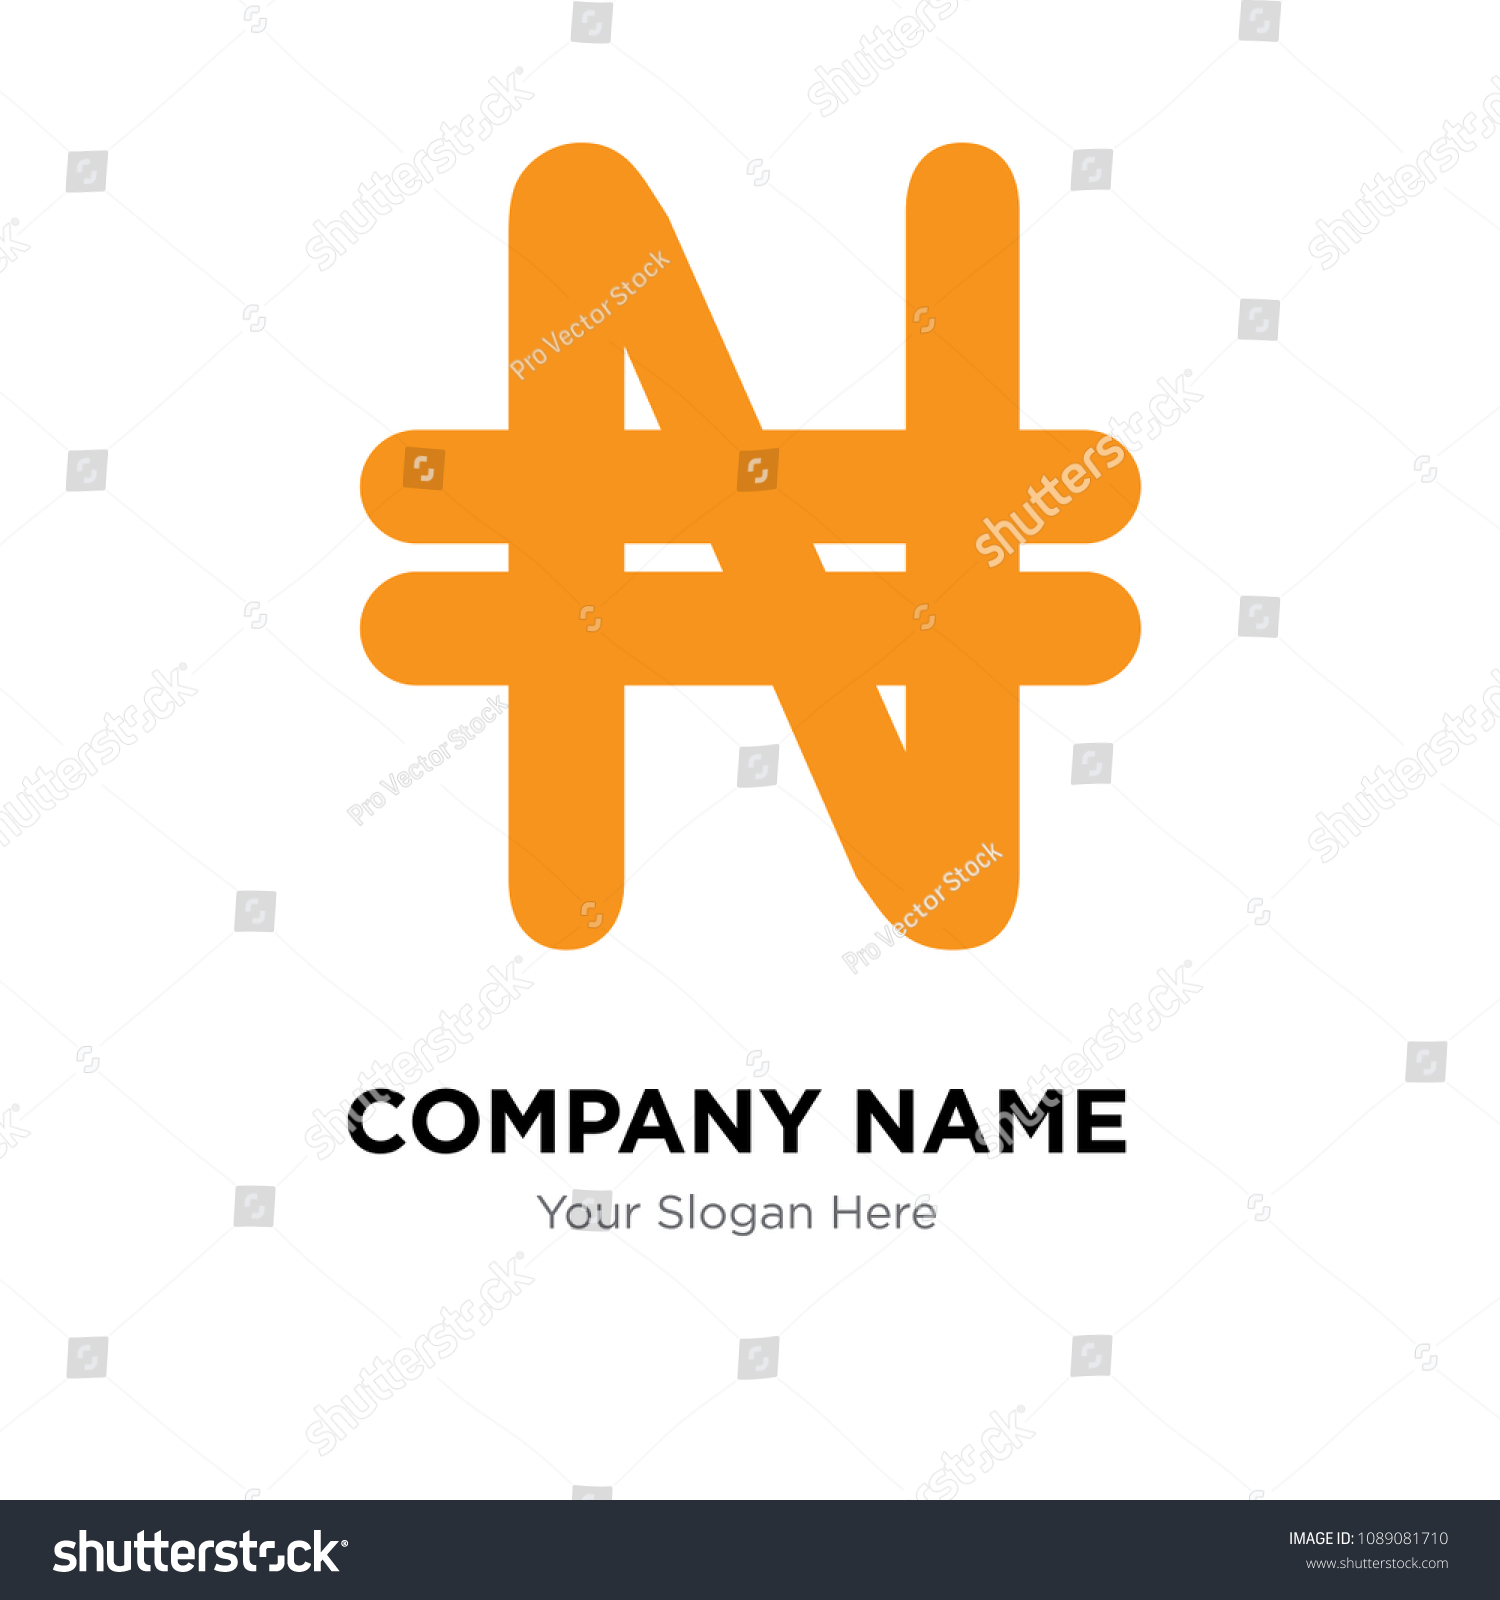 Nigeria Currency Company Logo Design Template Stock Vector Royalty